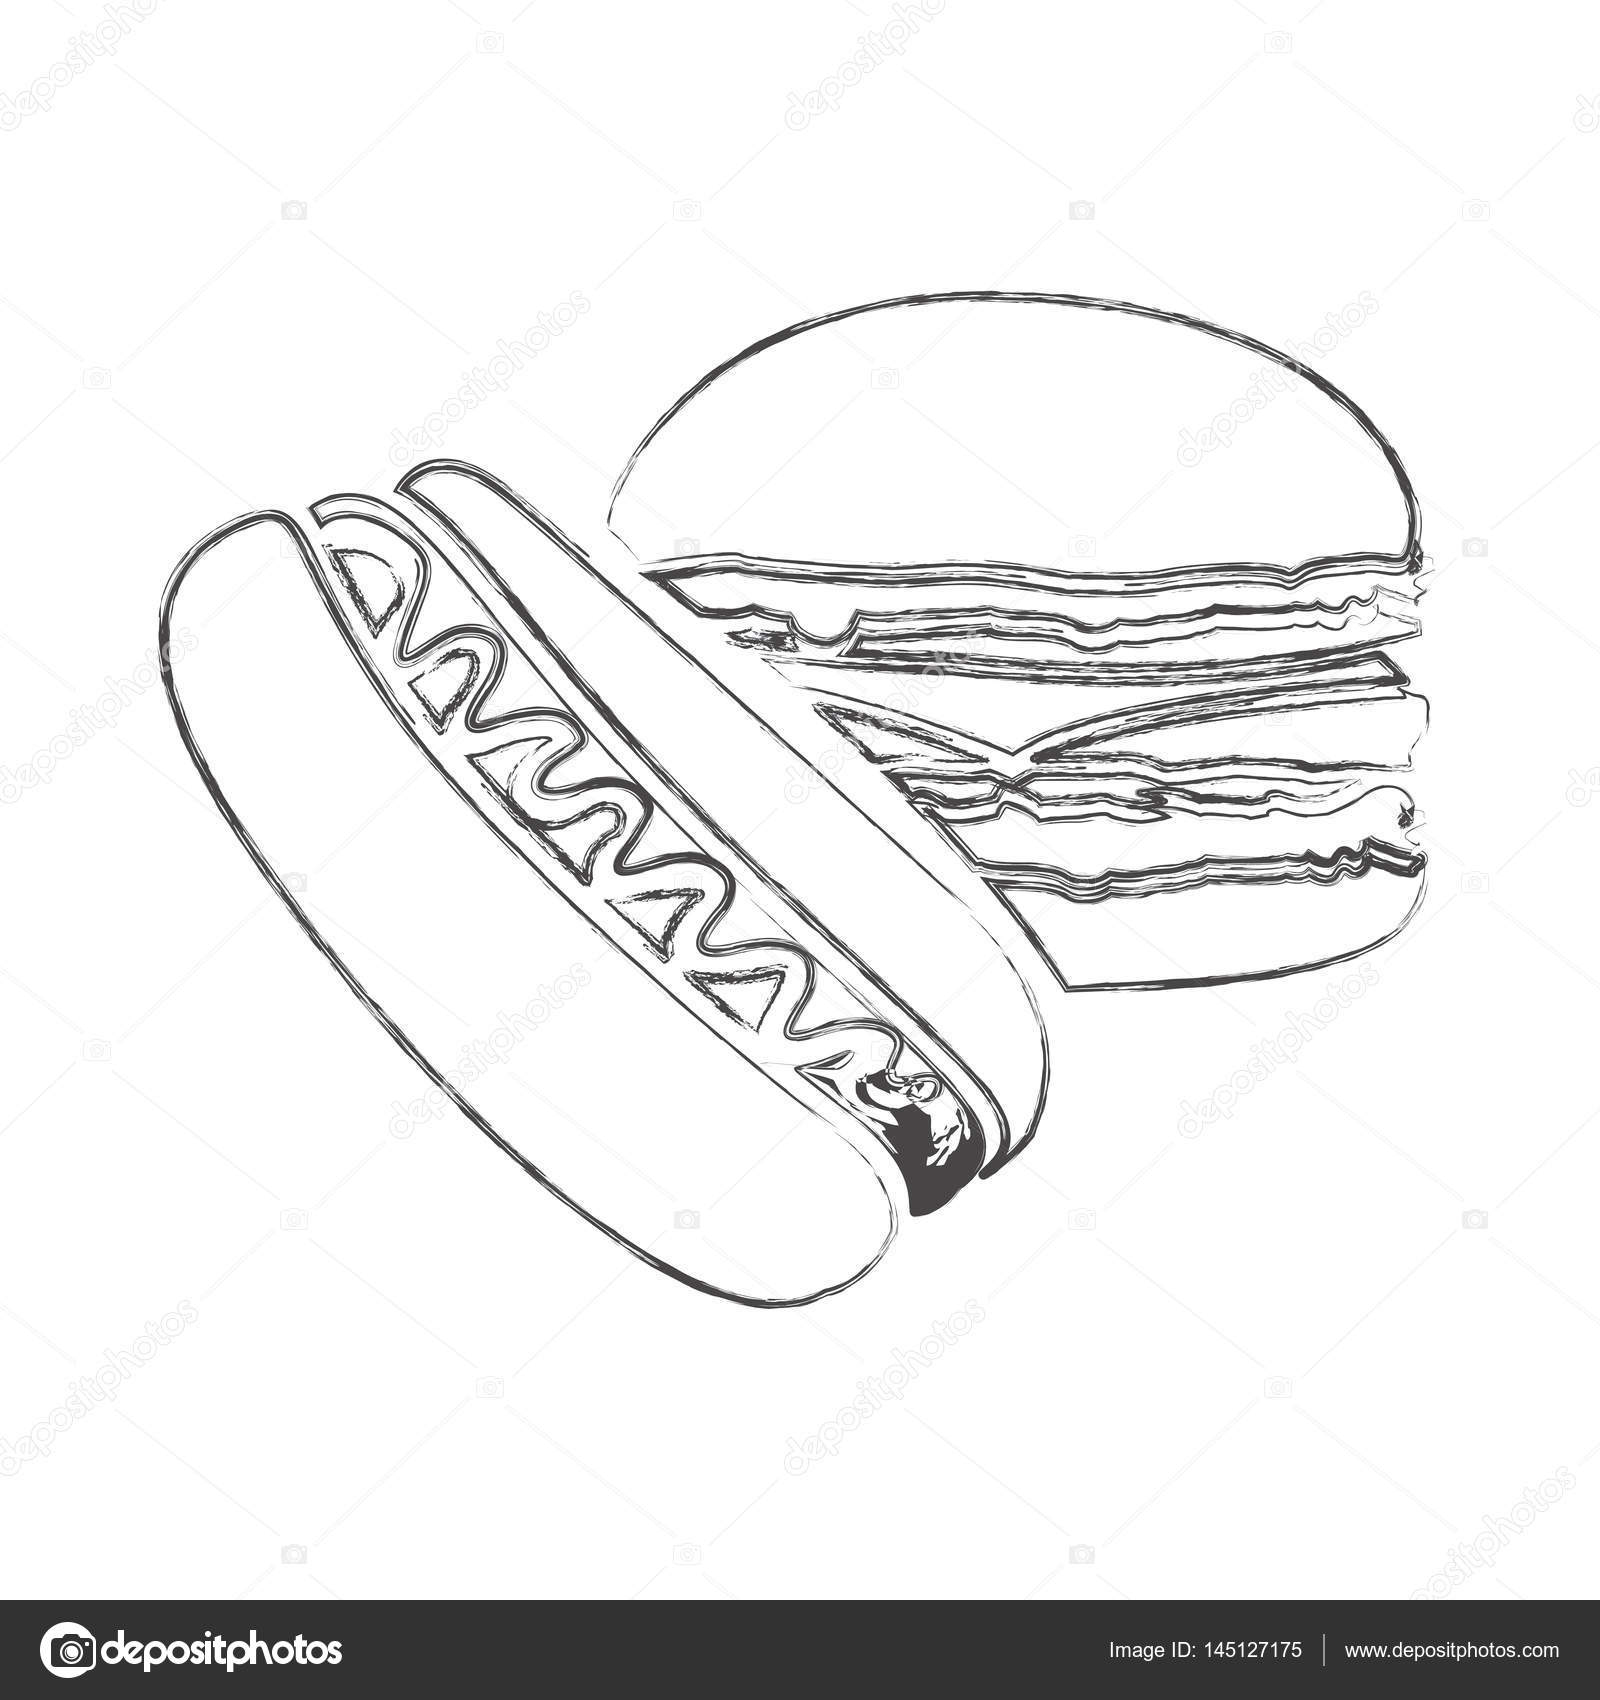 Sketch Of Monochrome Blurred Contour Of Burger And Hot Dog With